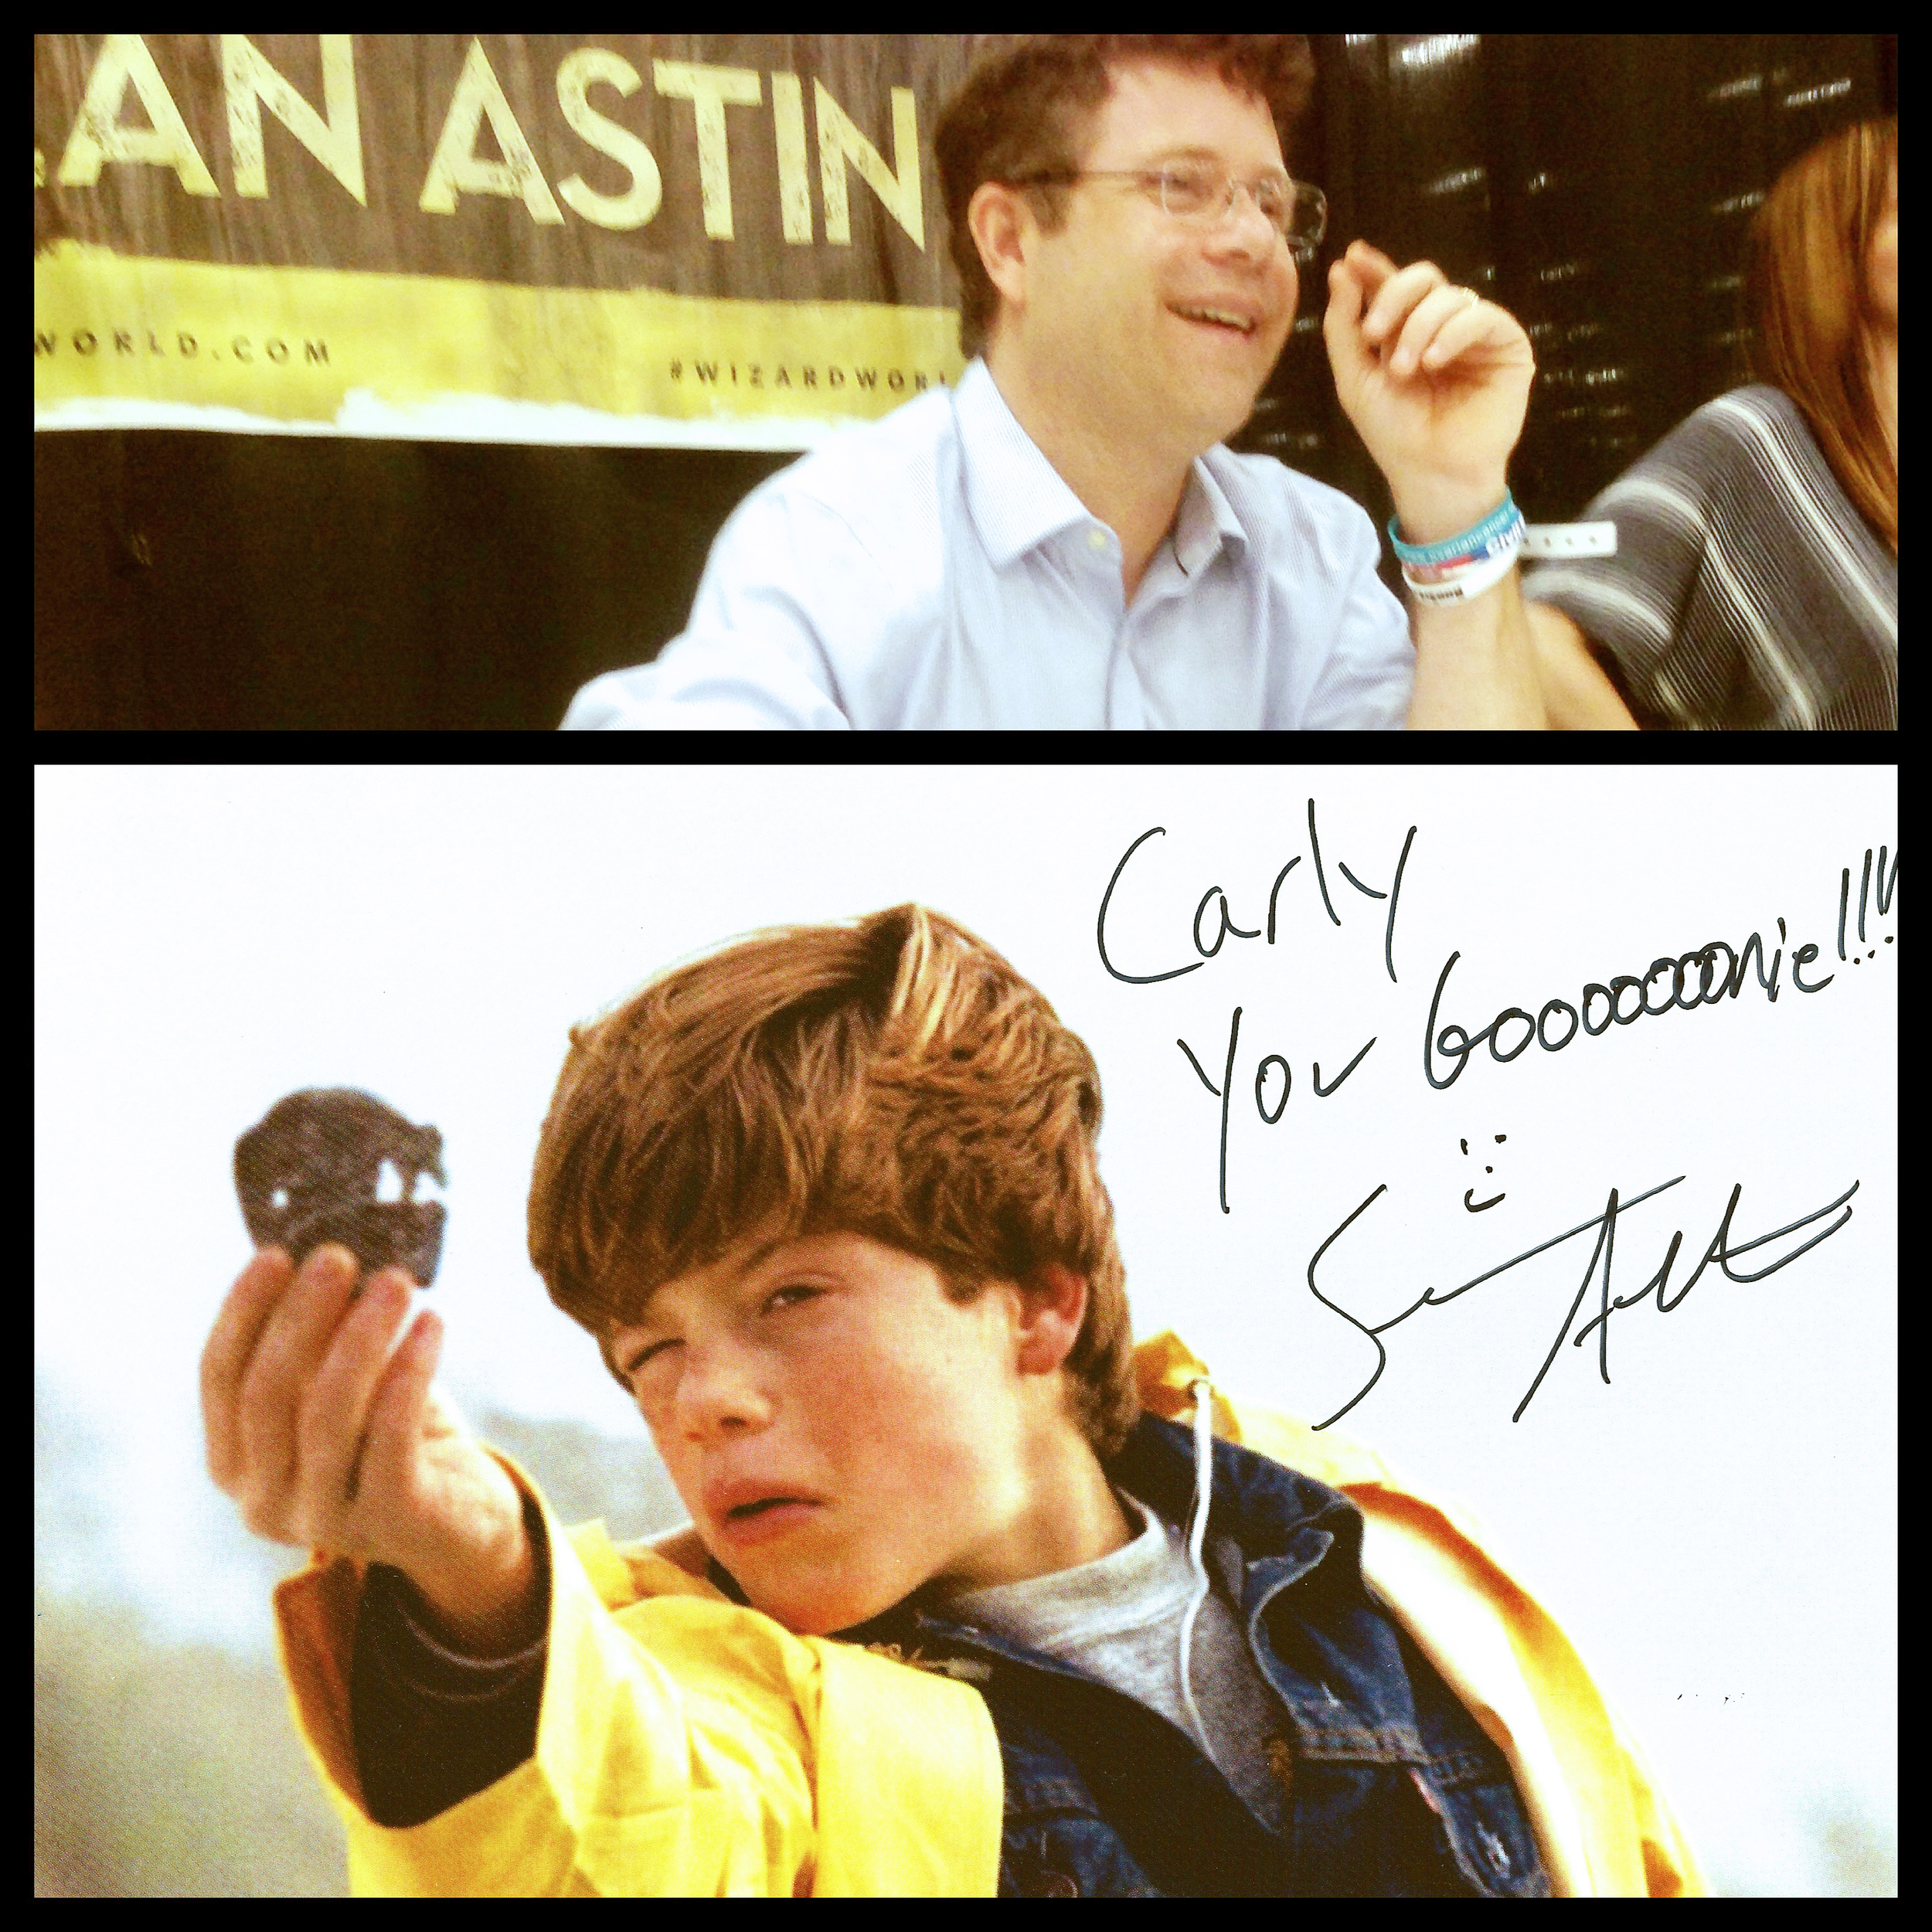 Words cannot express how excited I was to get this autograph from Sean Astin!  It could not be more perfect.